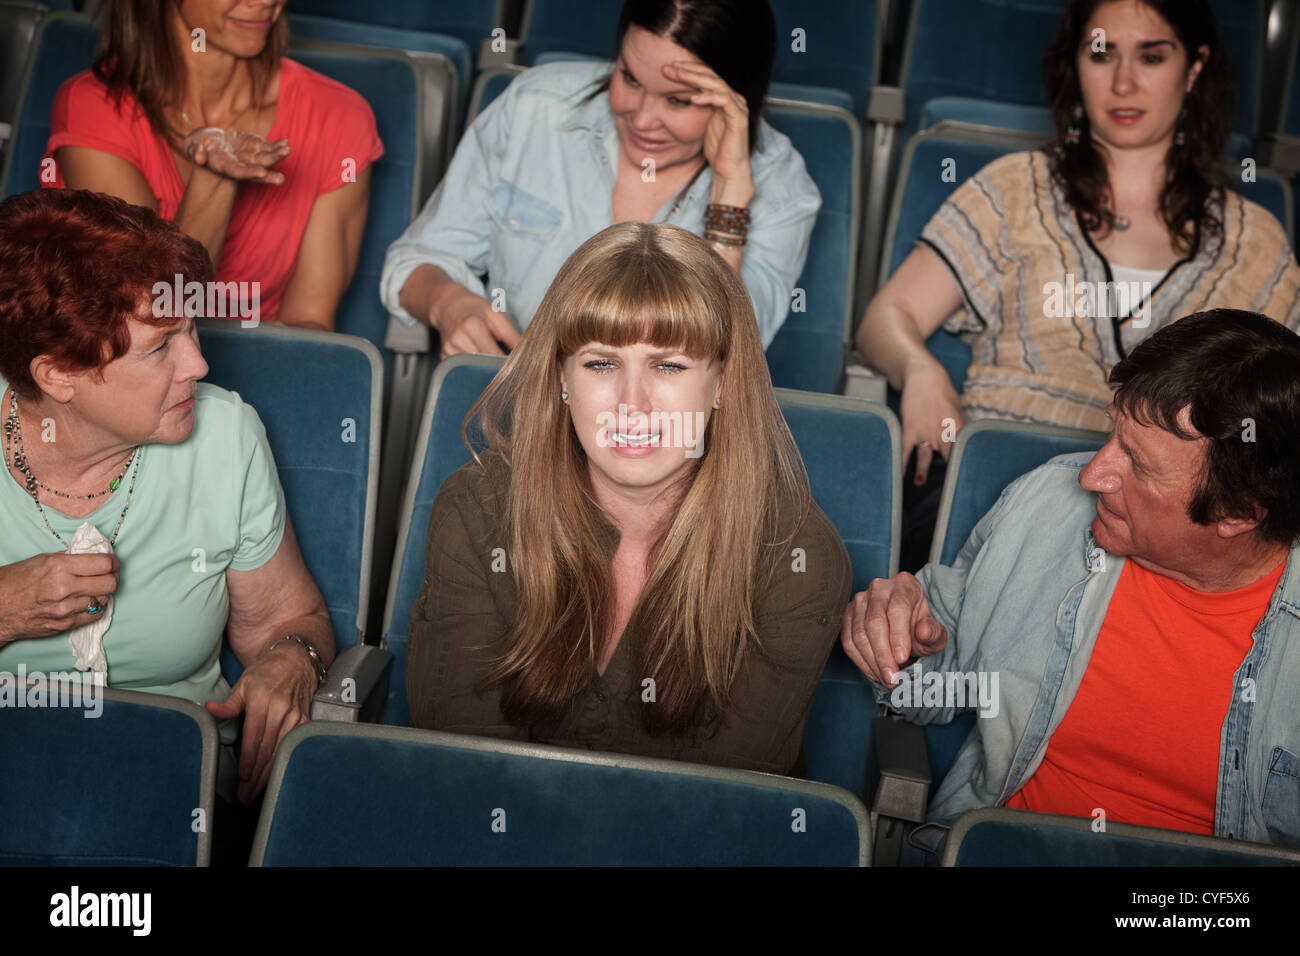 Weeping woman and distracted people in the audience - Stock Image